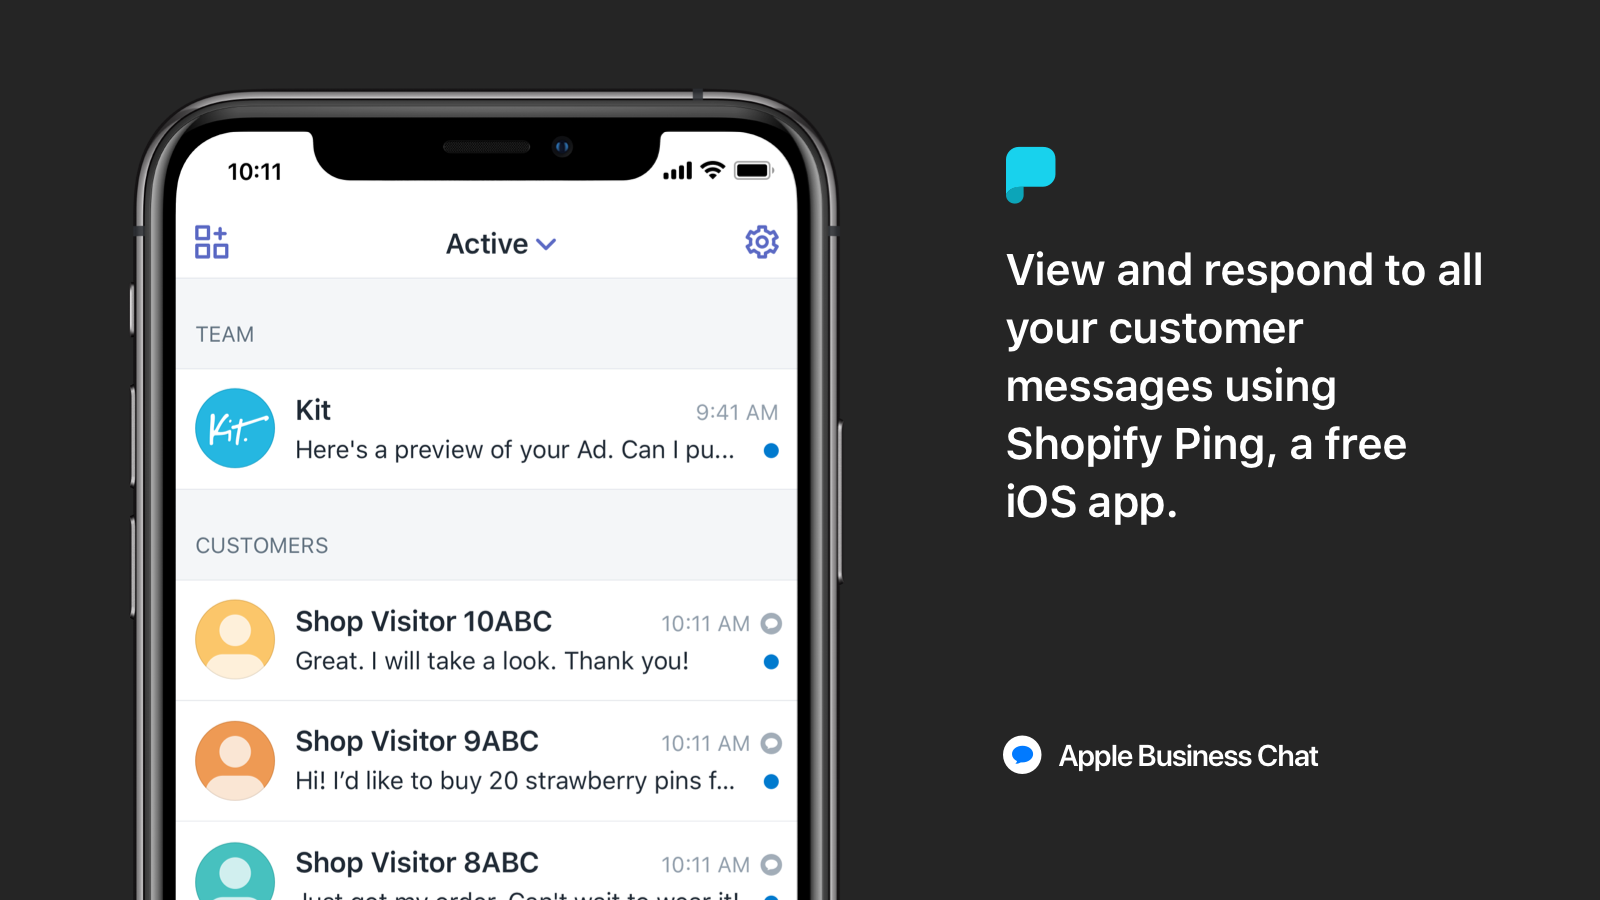 Respond to customer messages using Shopify Ping